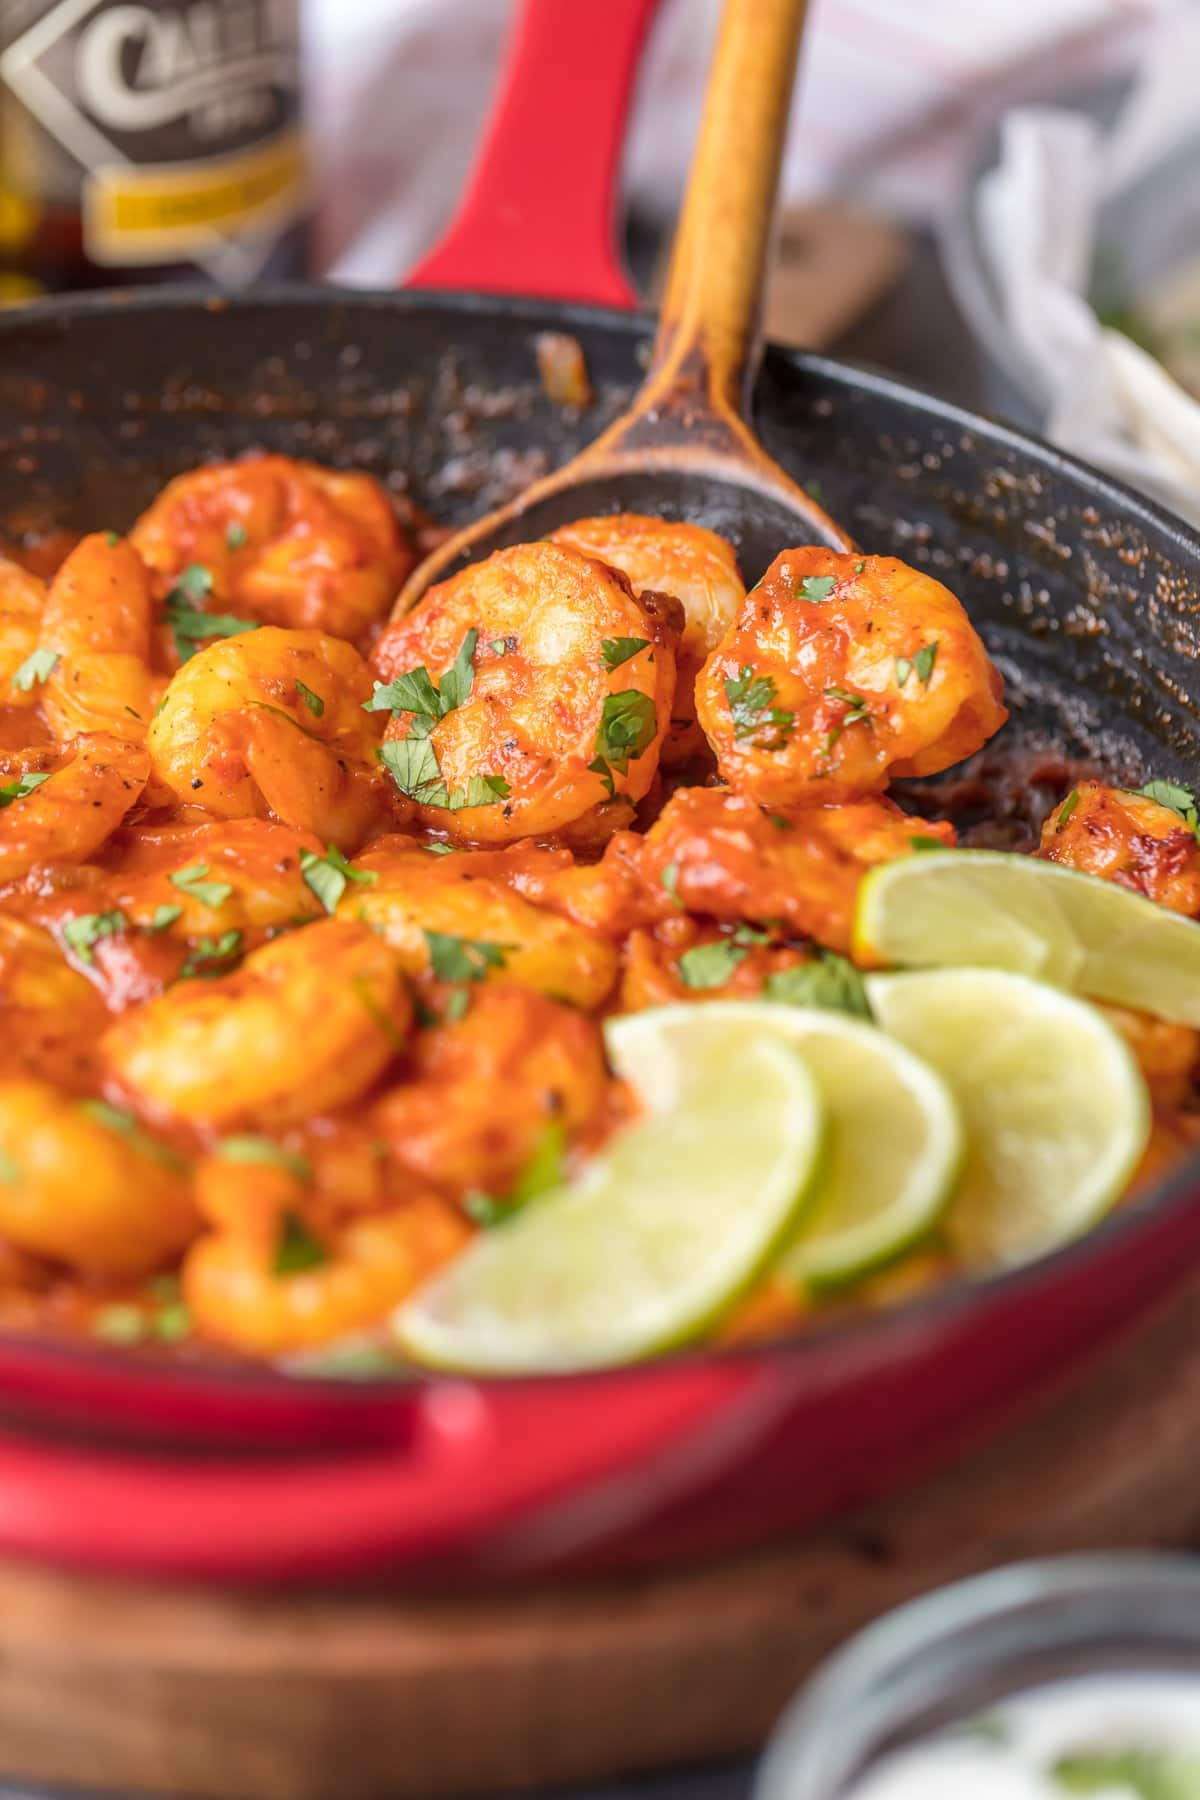 Spicy shrimp recipe made in a skillet